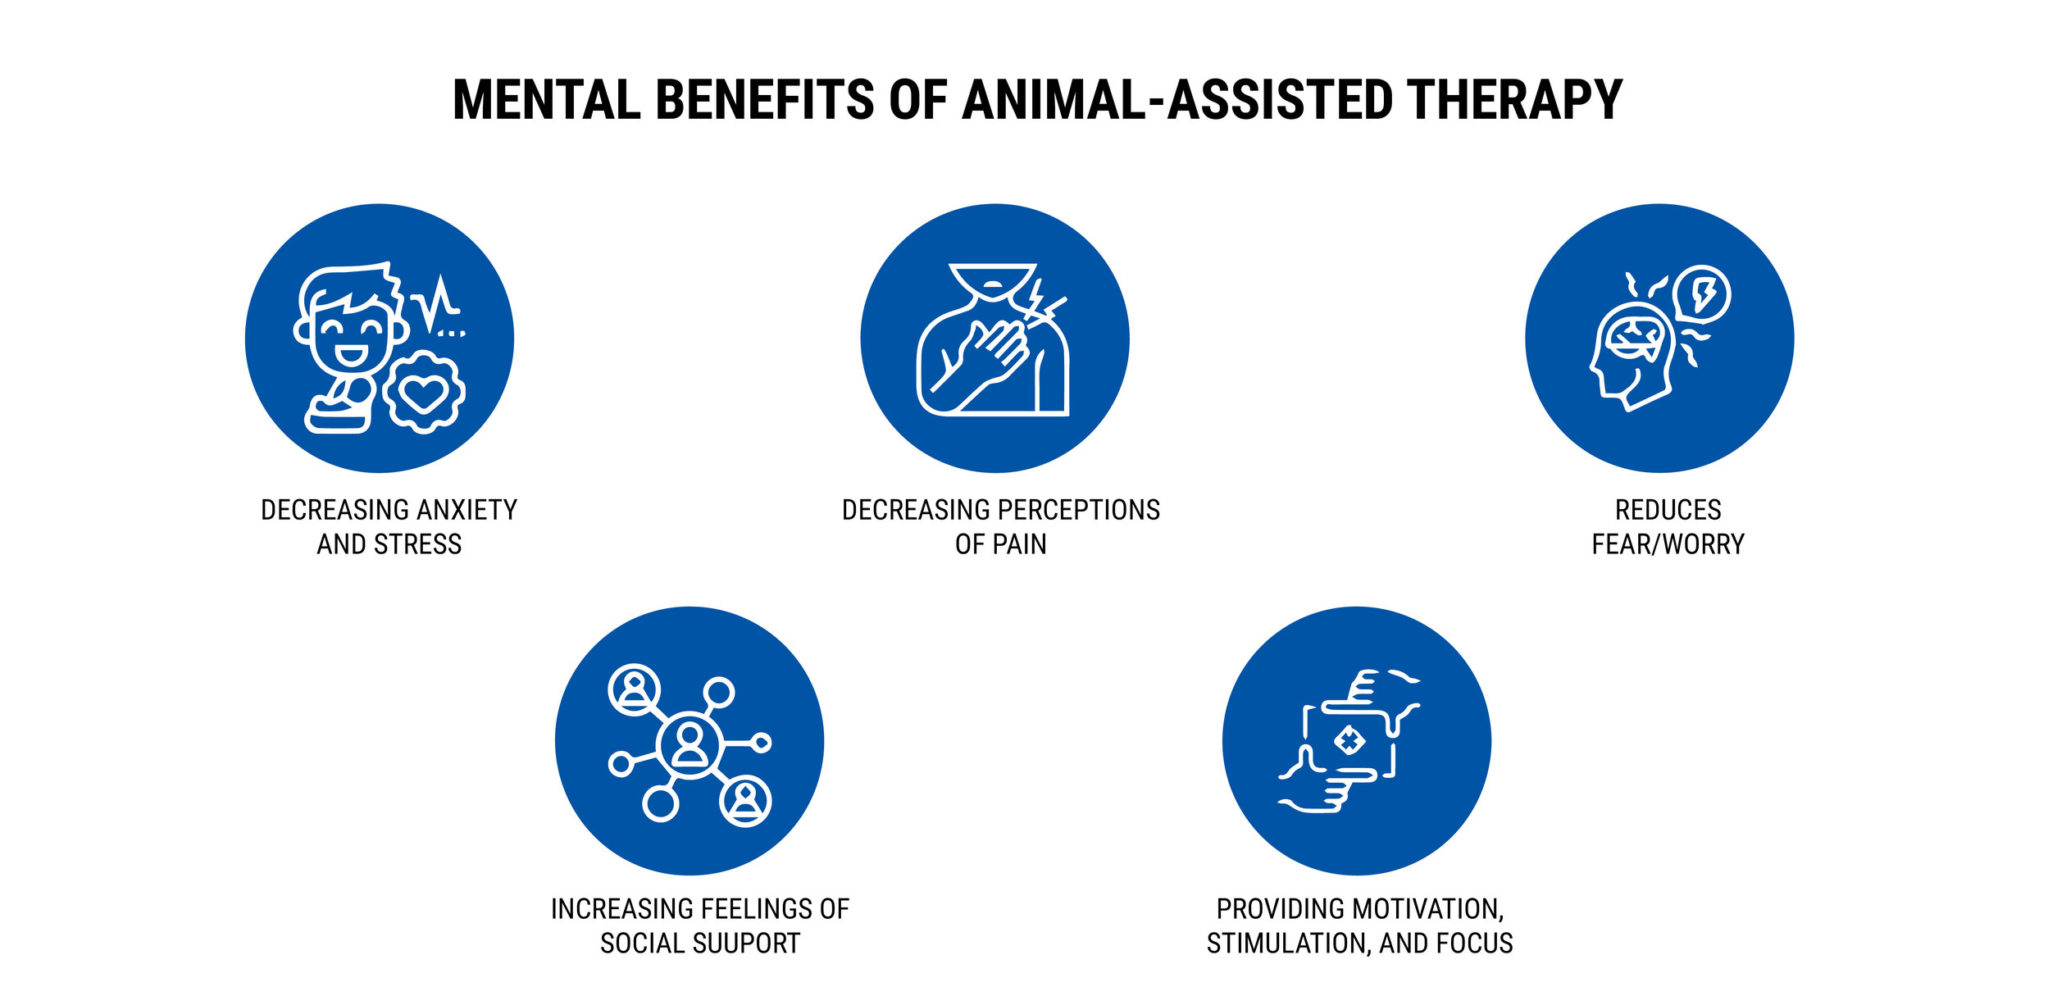 MENTAL BENEFITS OF ANIMAL-ASSISTED THERAPY